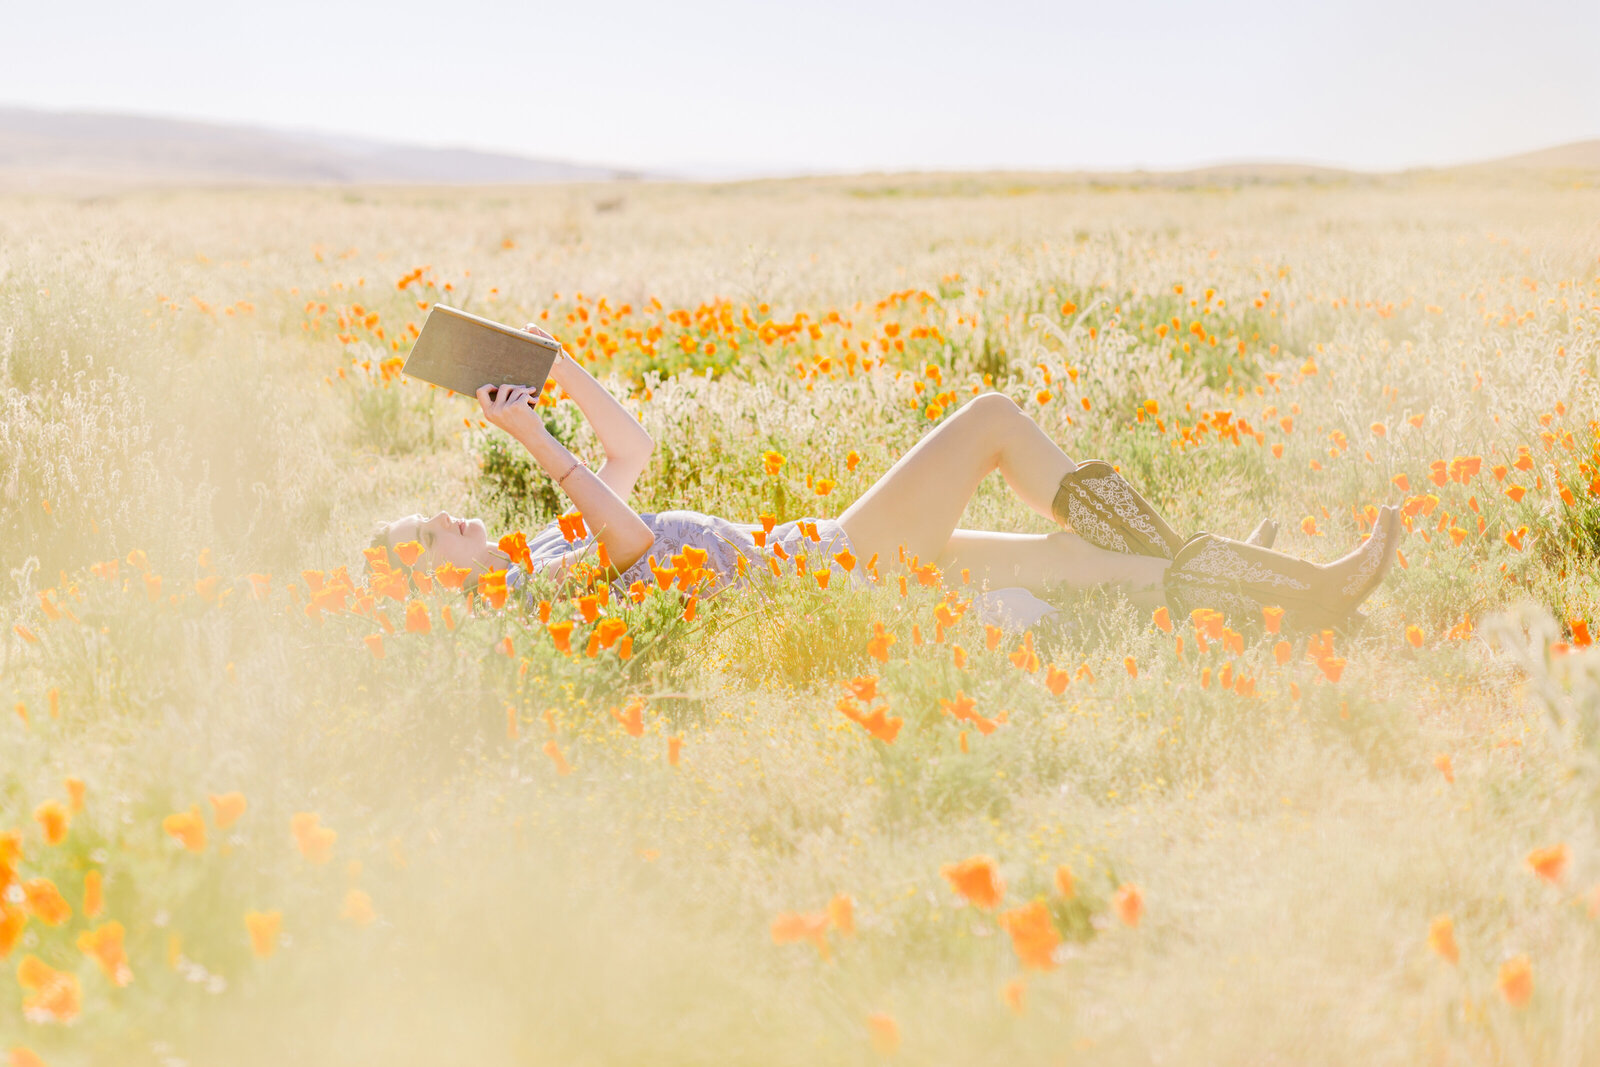 048-KBP-superbloom-Poppy-Field-girl-reading-book-001